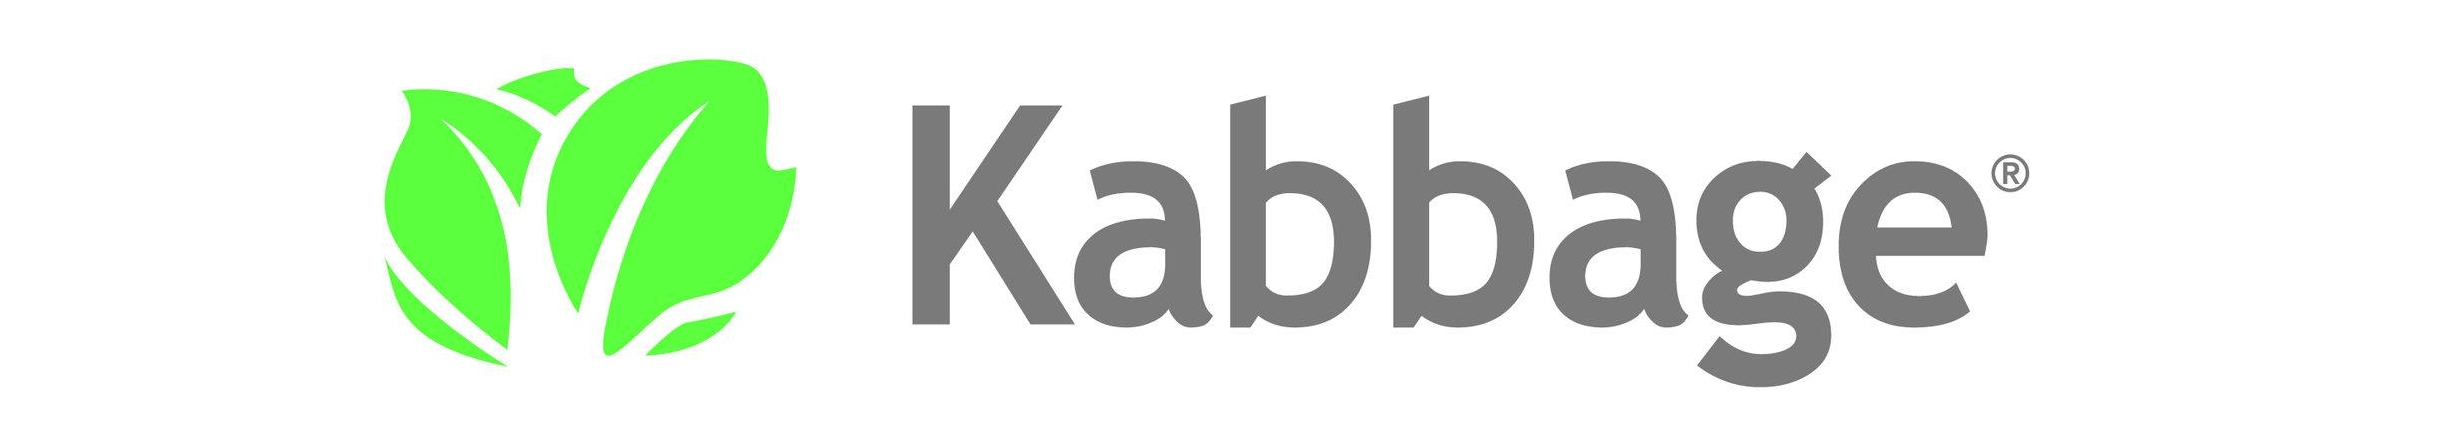 kabbage - Restaurant Rockstars Podcast